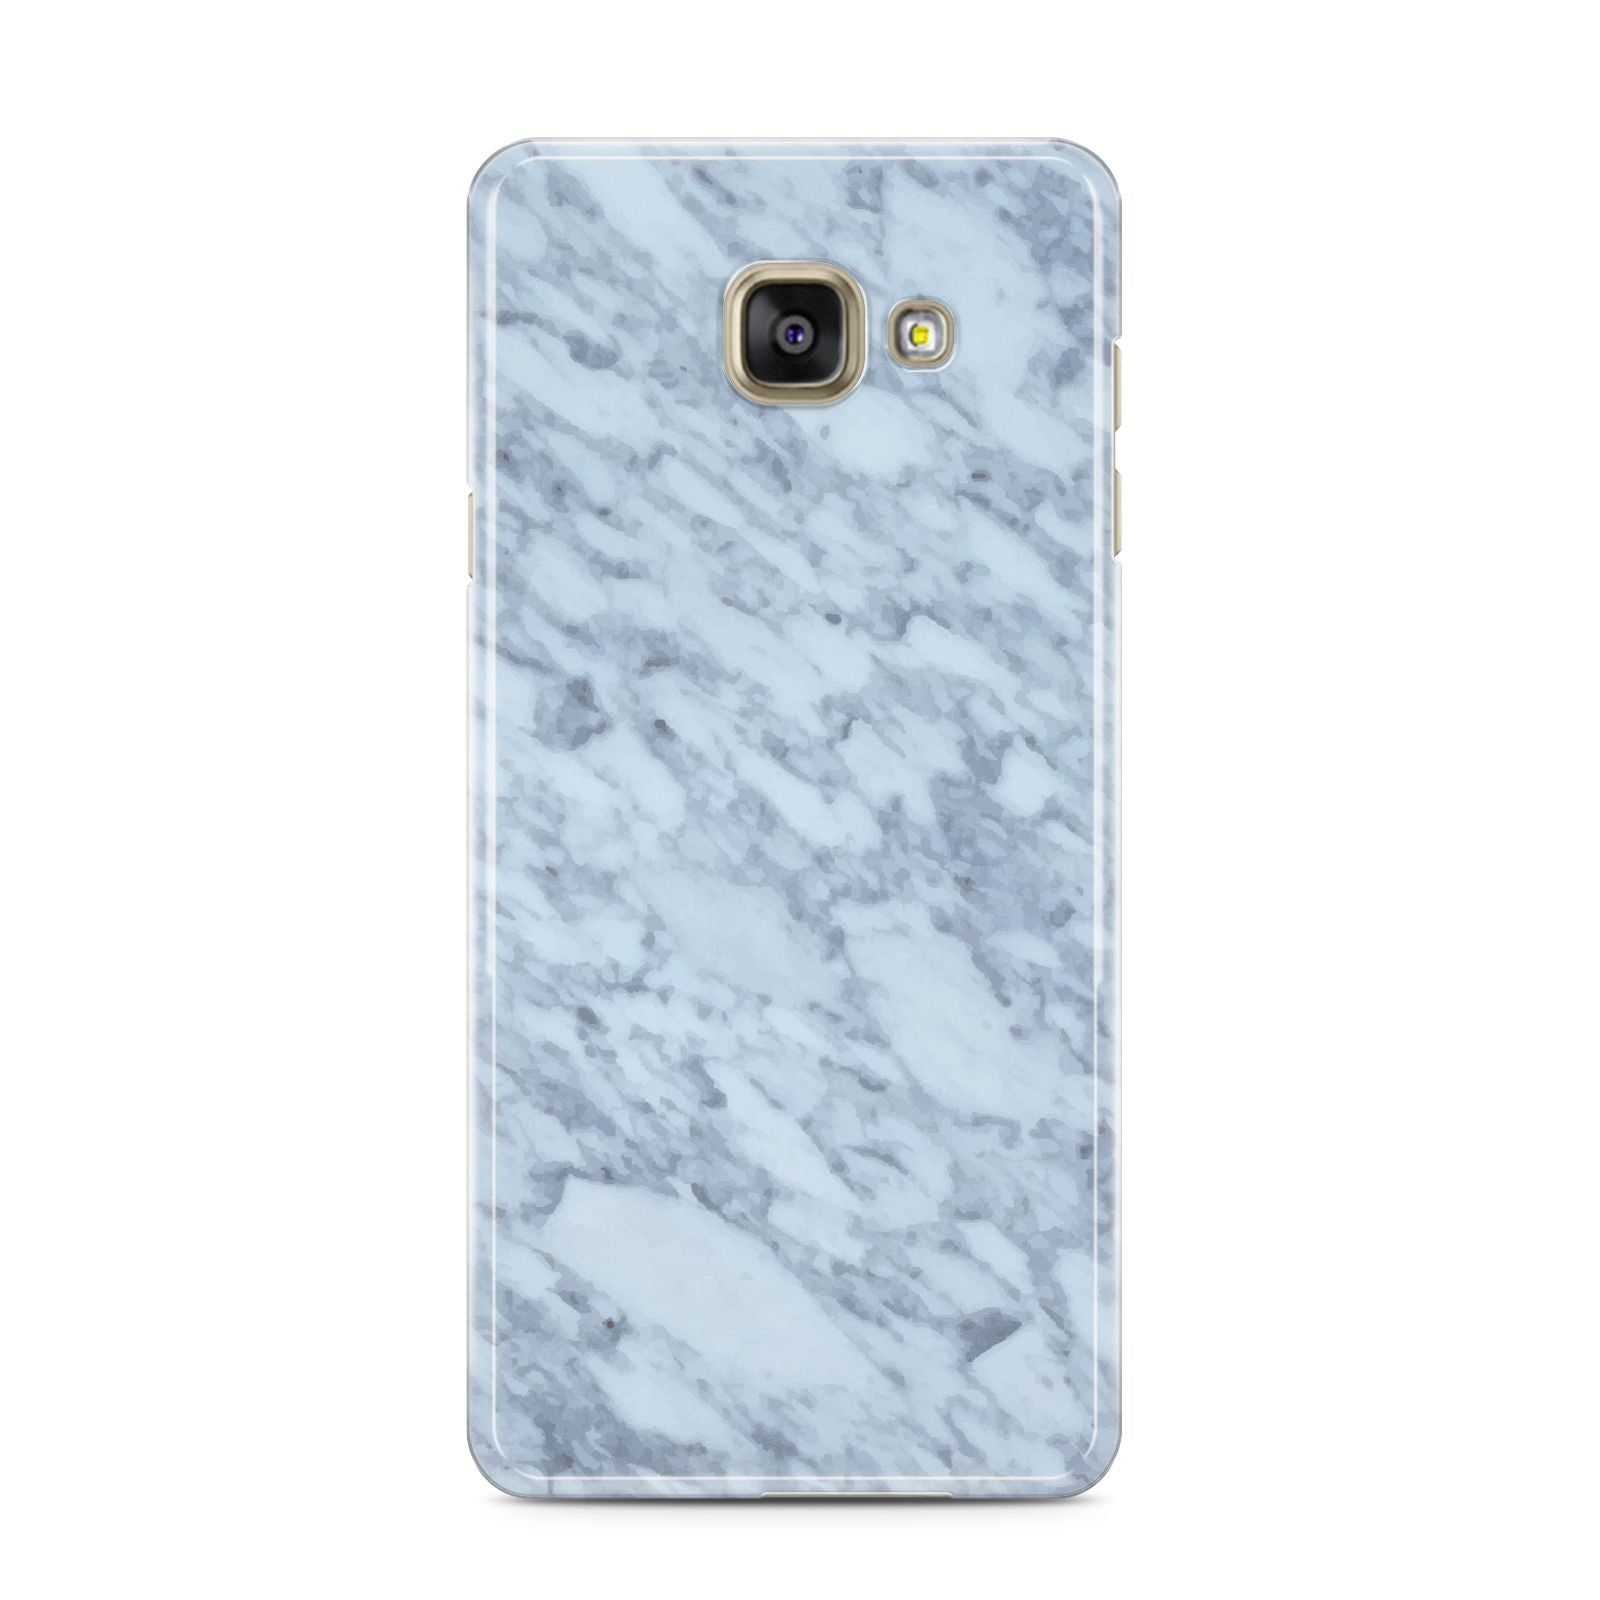 Faux Marble Grey 2 Samsung Galaxy A3 2016 Case on gold phone